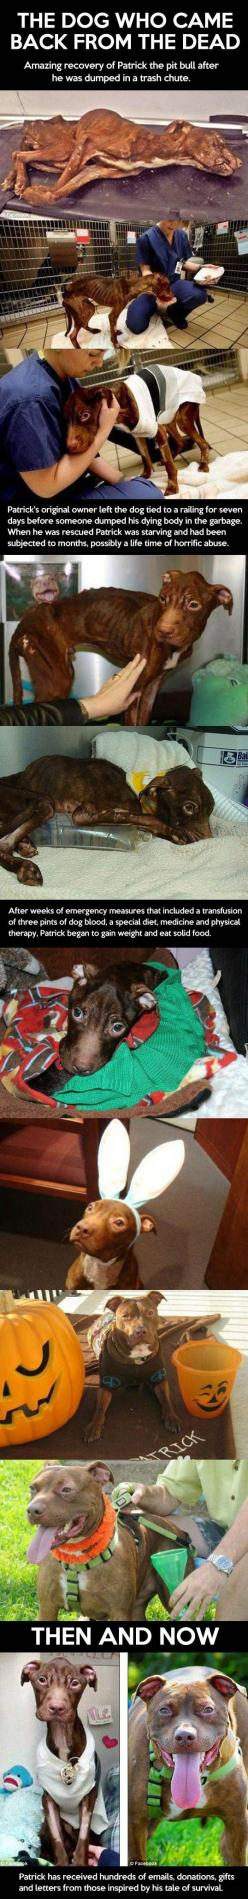 Poor baby!!: Animal Rights, Animal Cruelty, Pitbull, Amazing Dogs, Animal Abuse, Animal Stories, Dogs ️, Animal Rescues, Beautiful Dogs